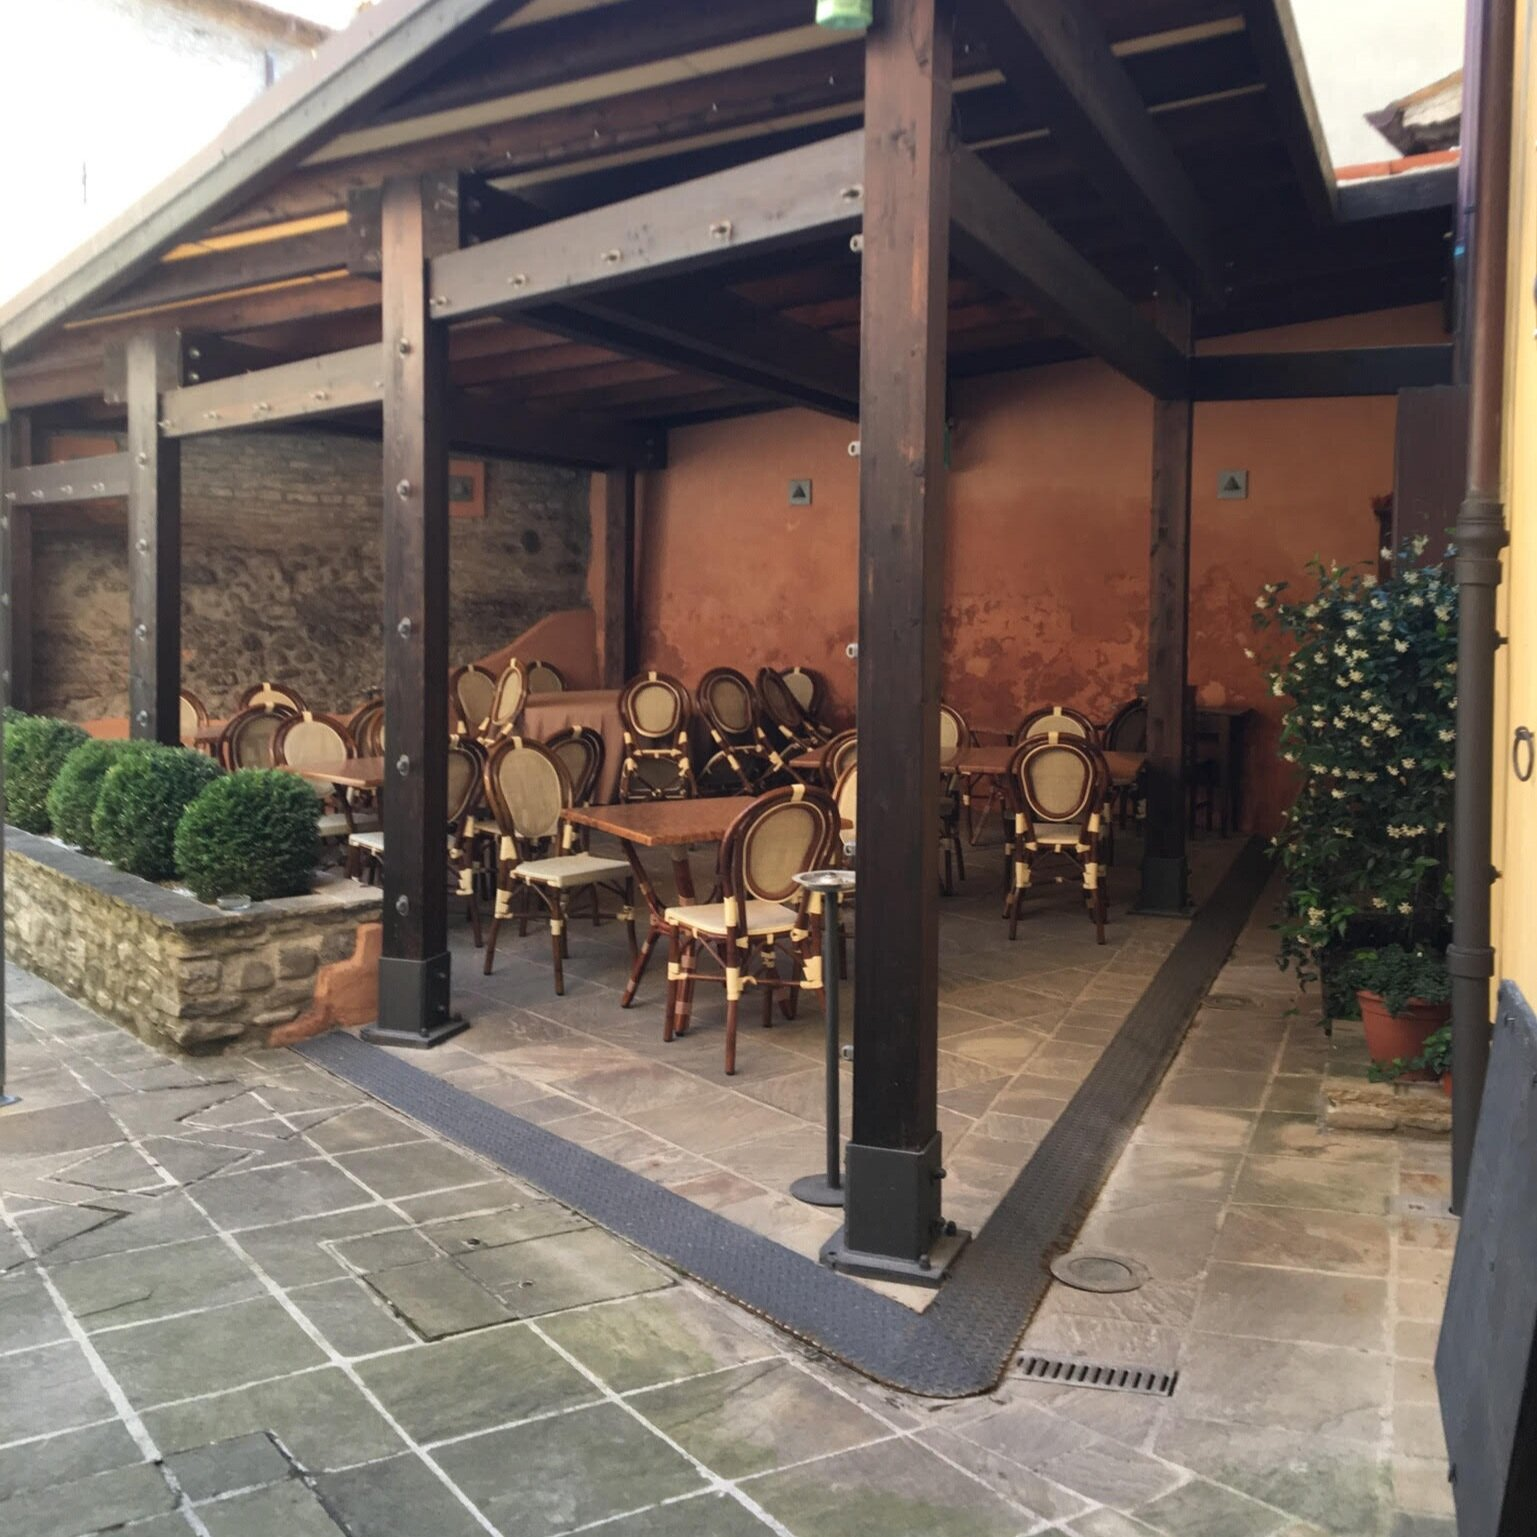 The hotel restaurant patio where guests can enjoy a cup of coffee, breakfast, and dinner.